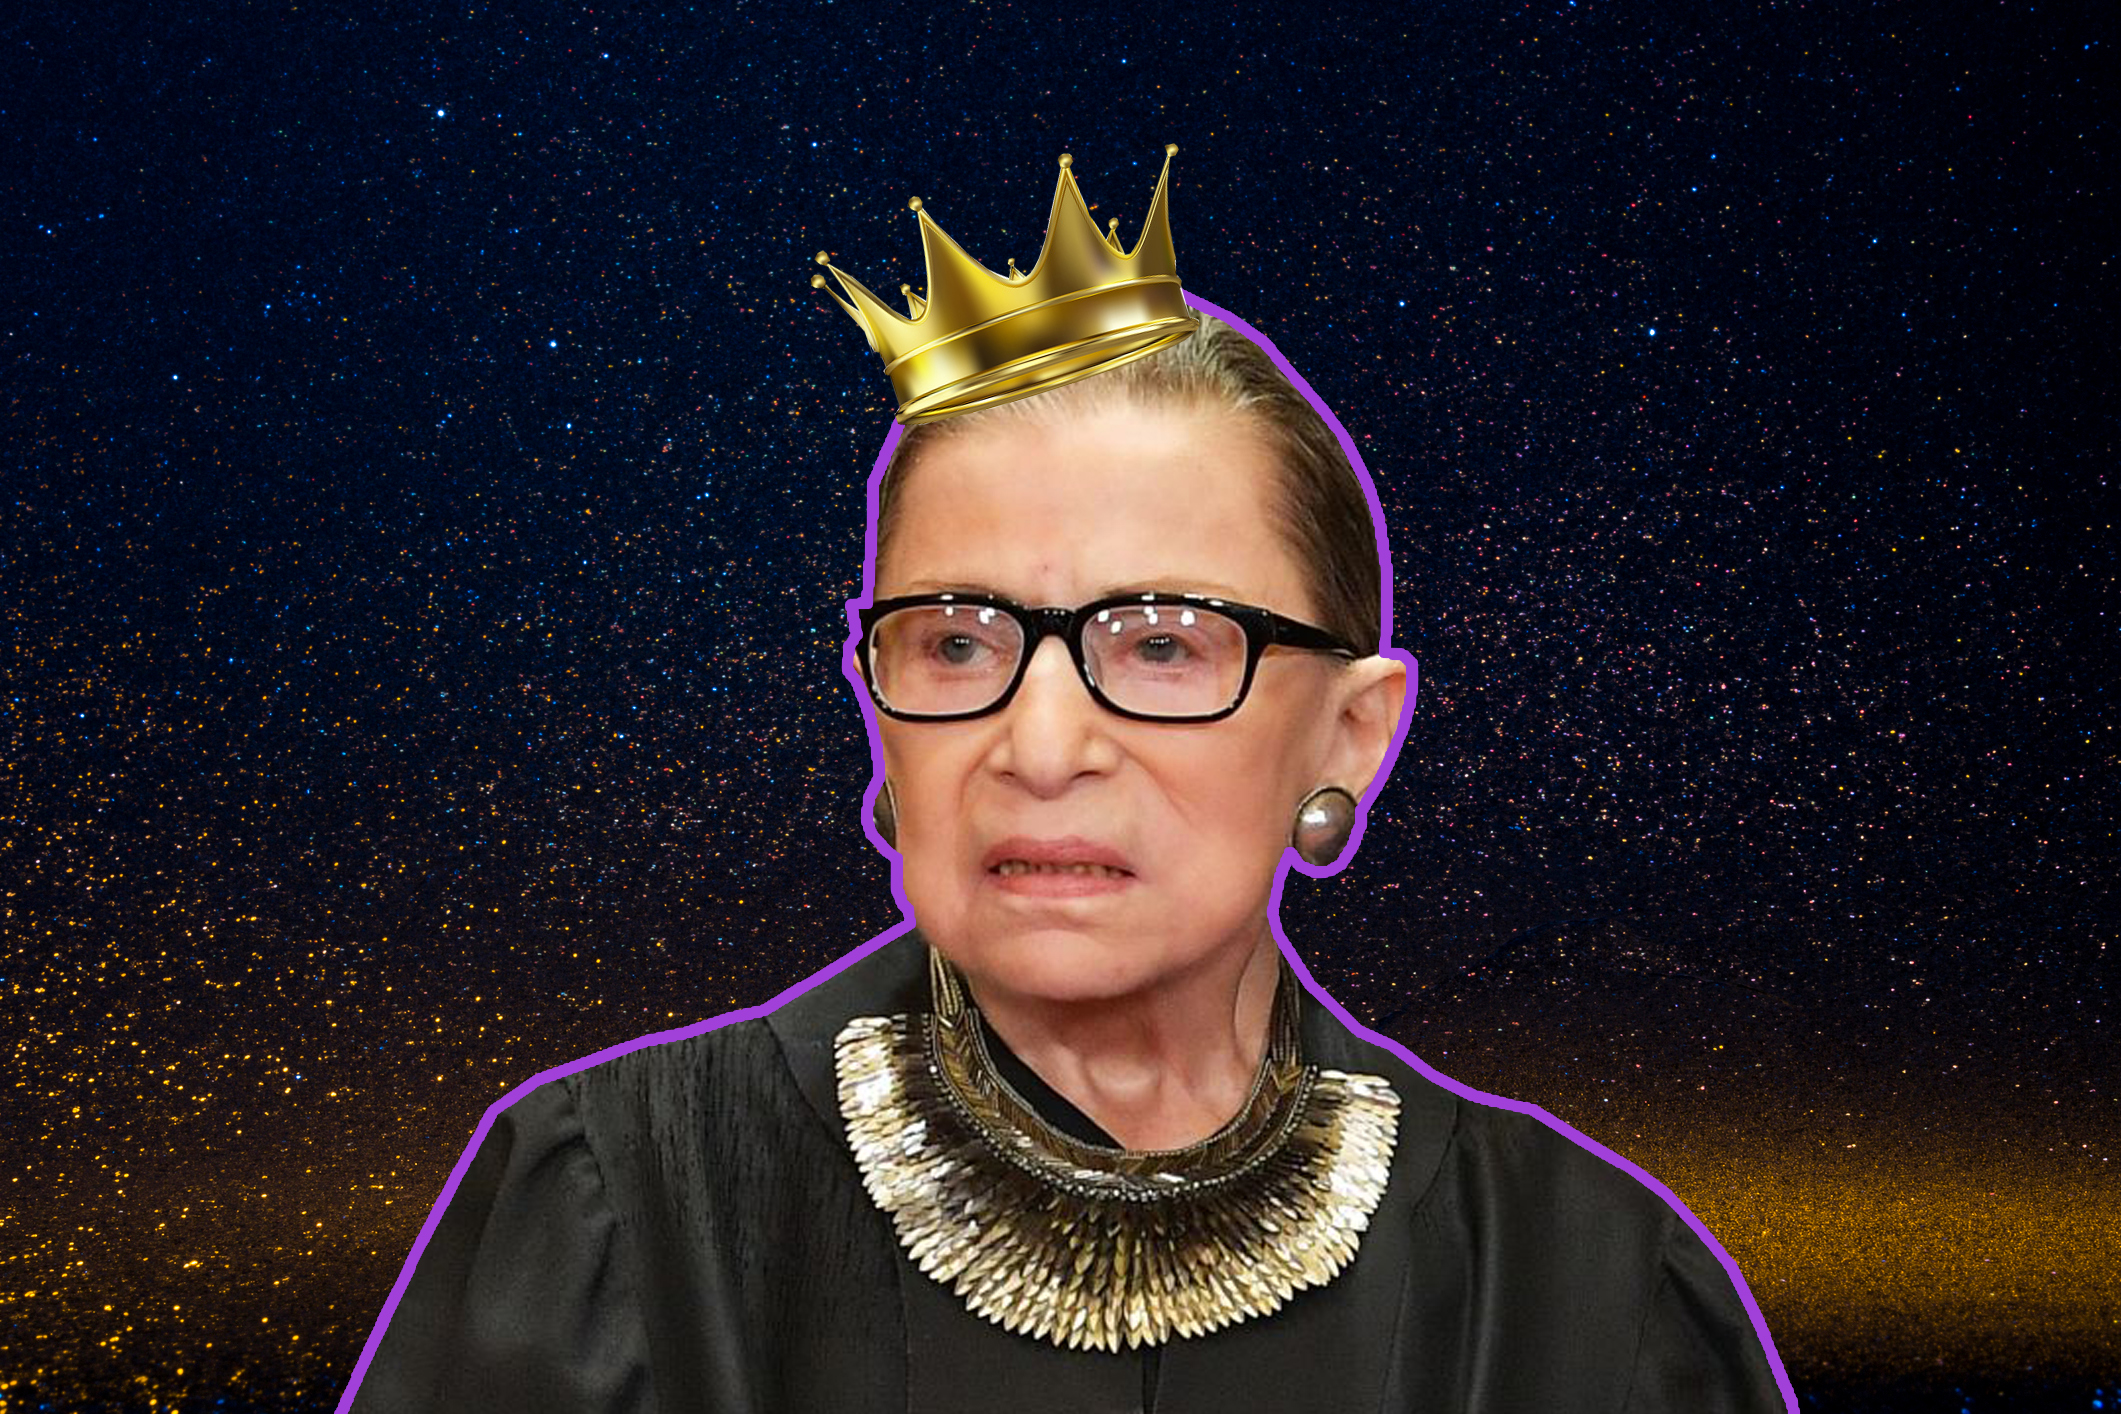 11 badass Ruth Bader Ginsburg quotes that will make you want to fight harder for equality